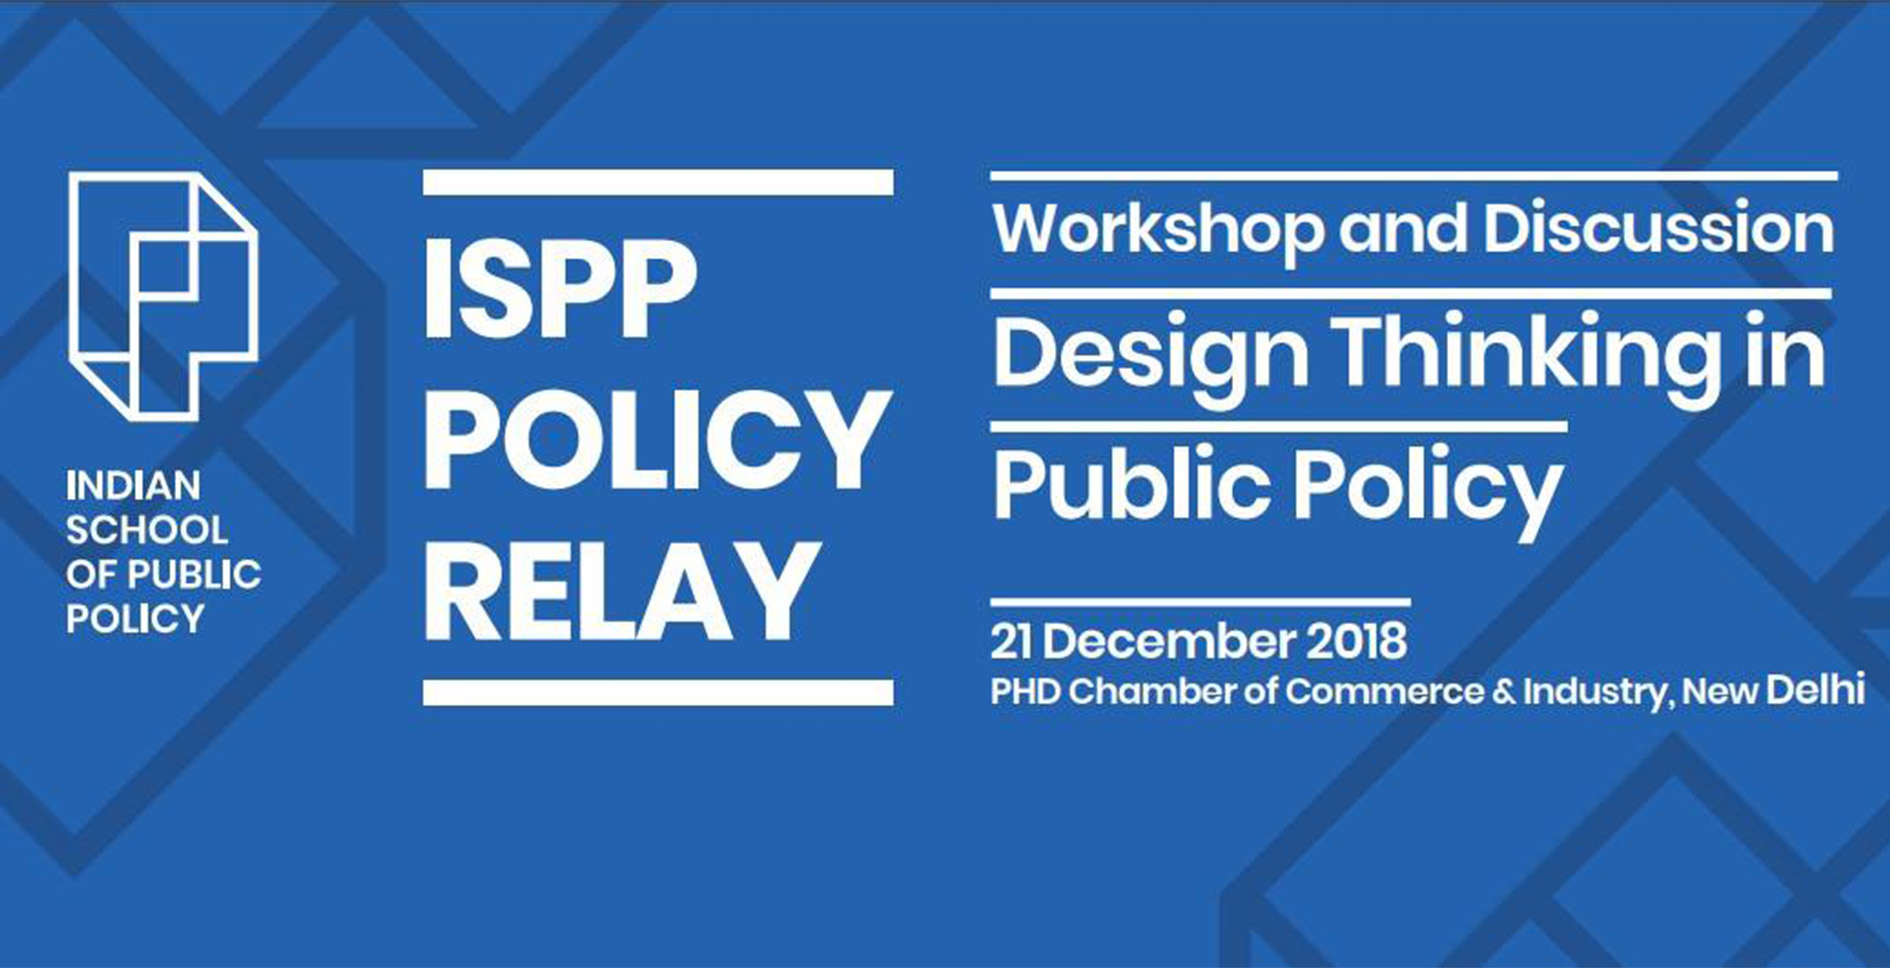 Design Thinking in Public policy